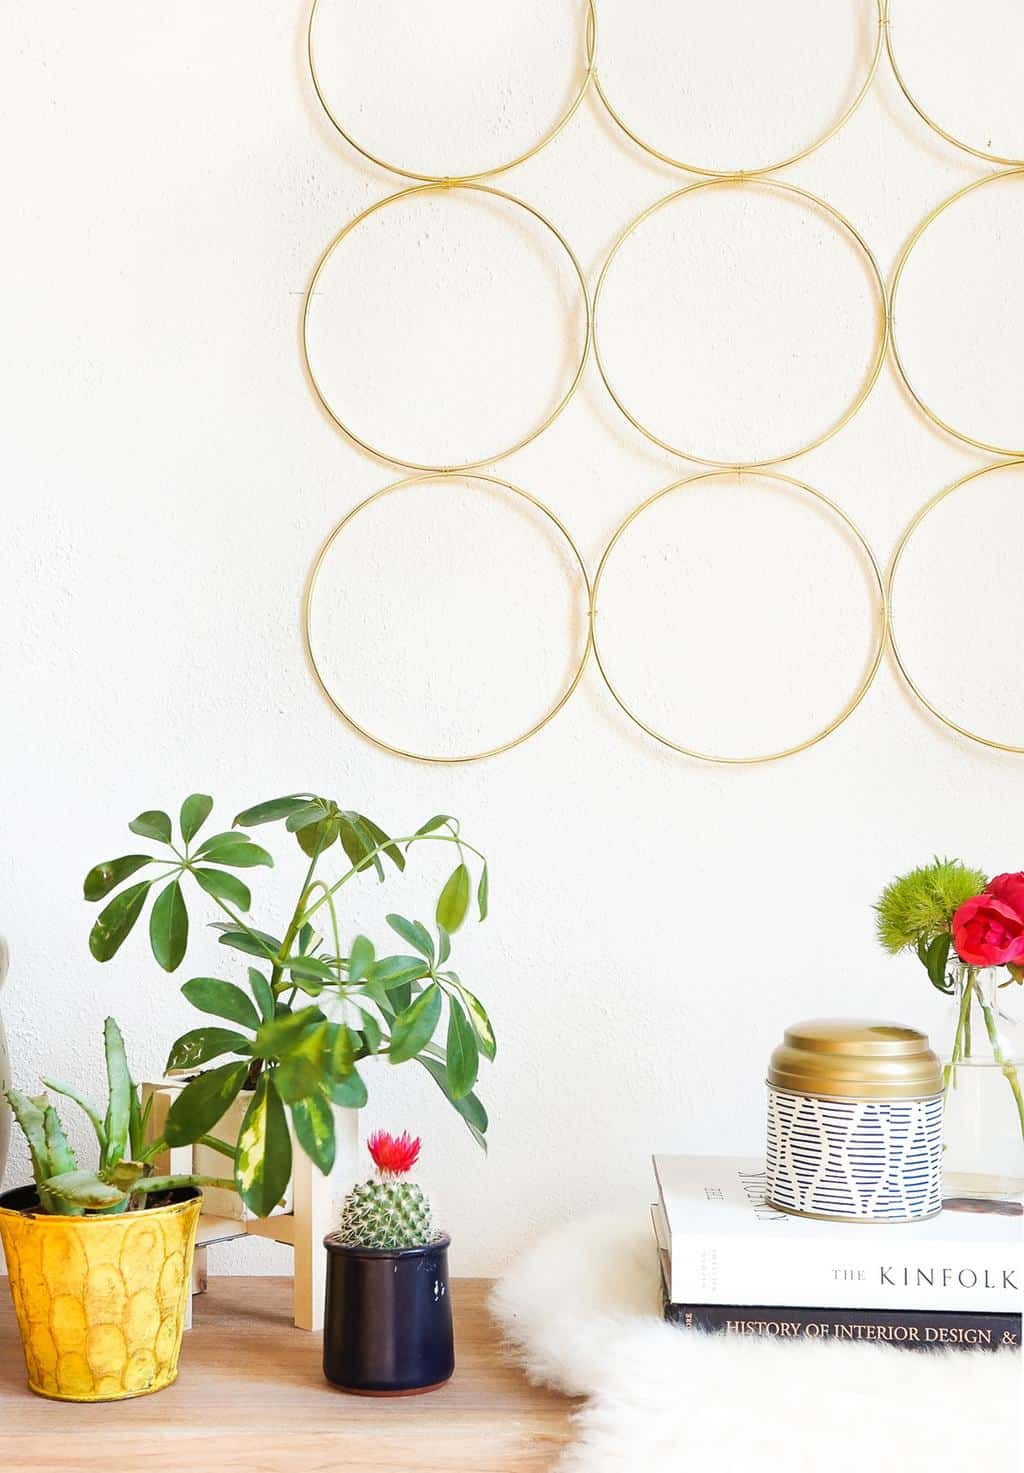 DIY Brass Ring Wall Decor | Sugar & Cloth